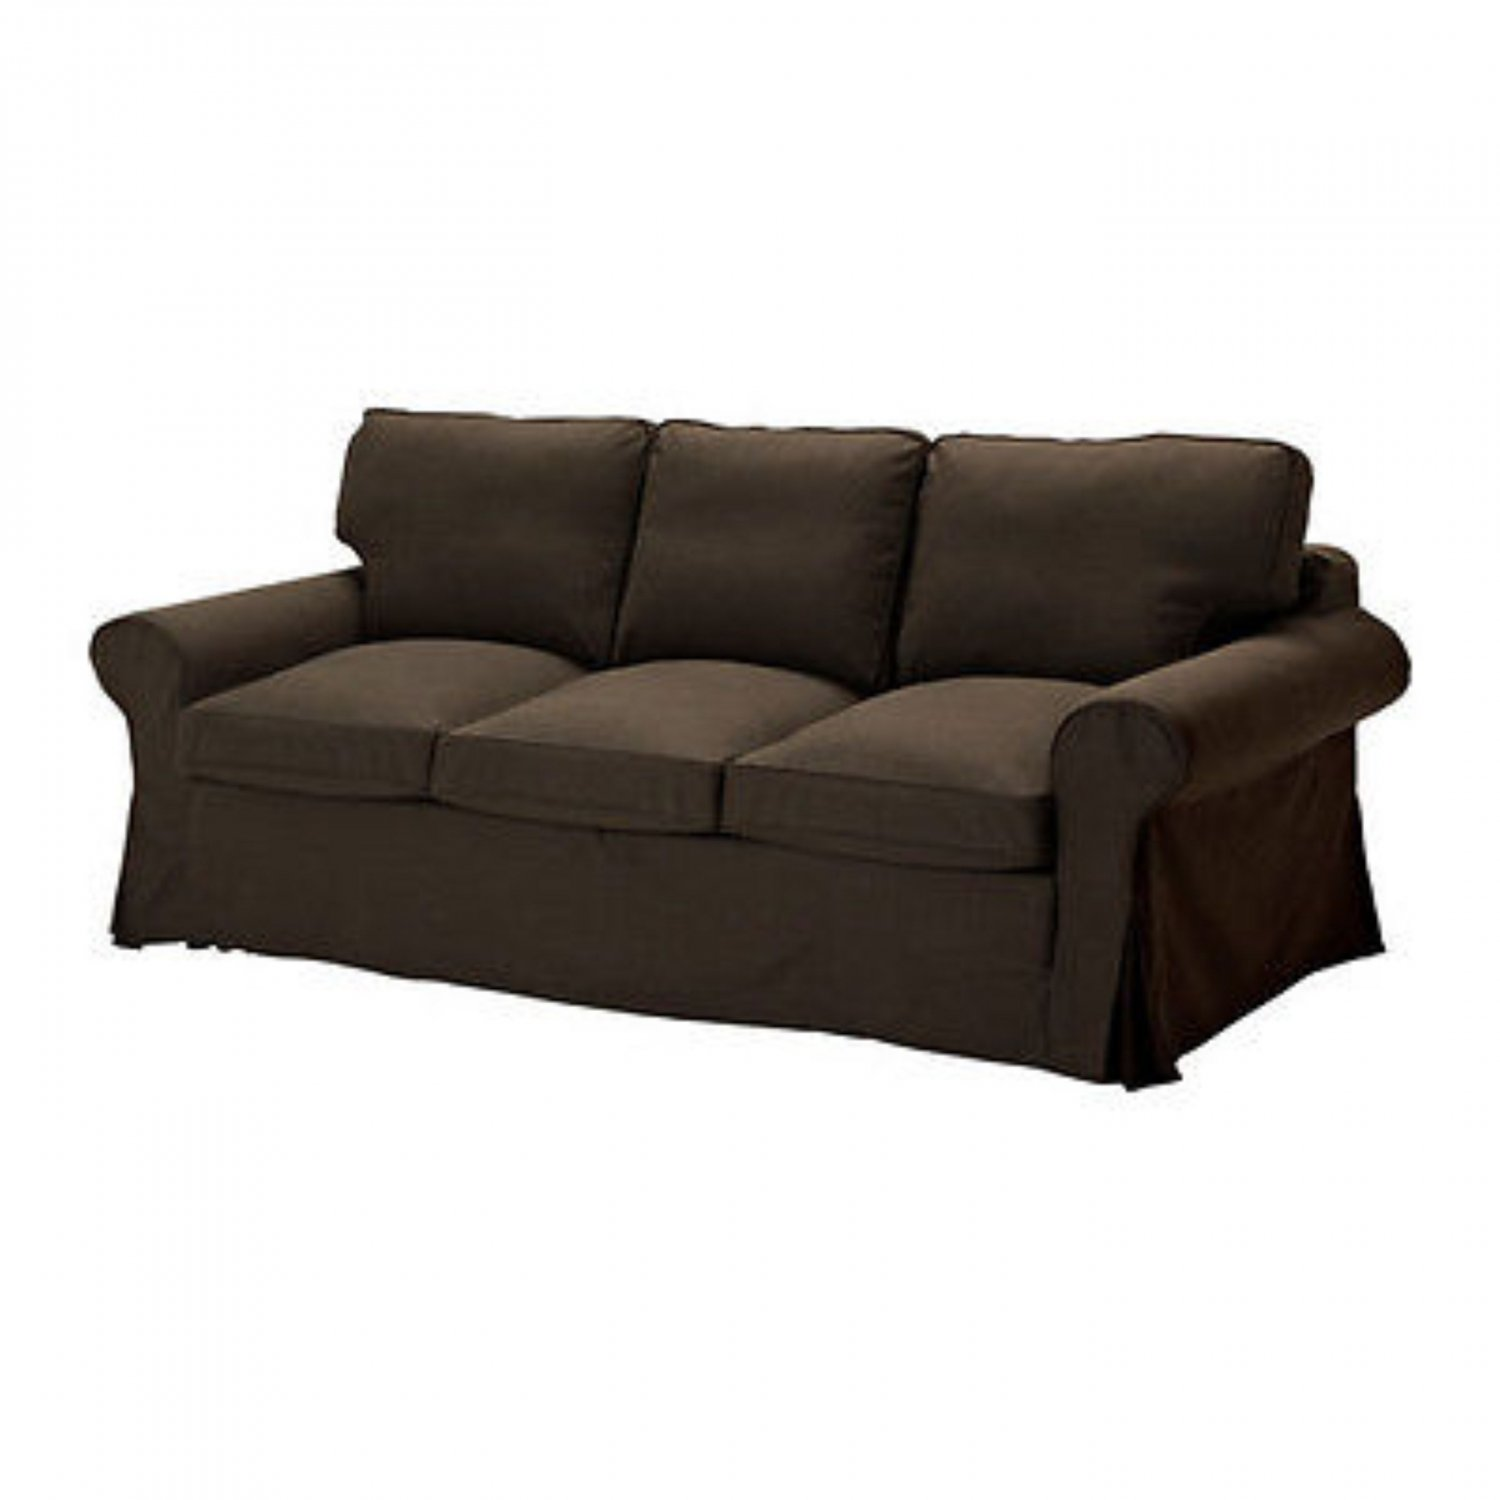 Ikea Sofa 3 Ikea Ektorp Pixbo 3 Seater Sofa Bed Svanby Brown 301 824 28